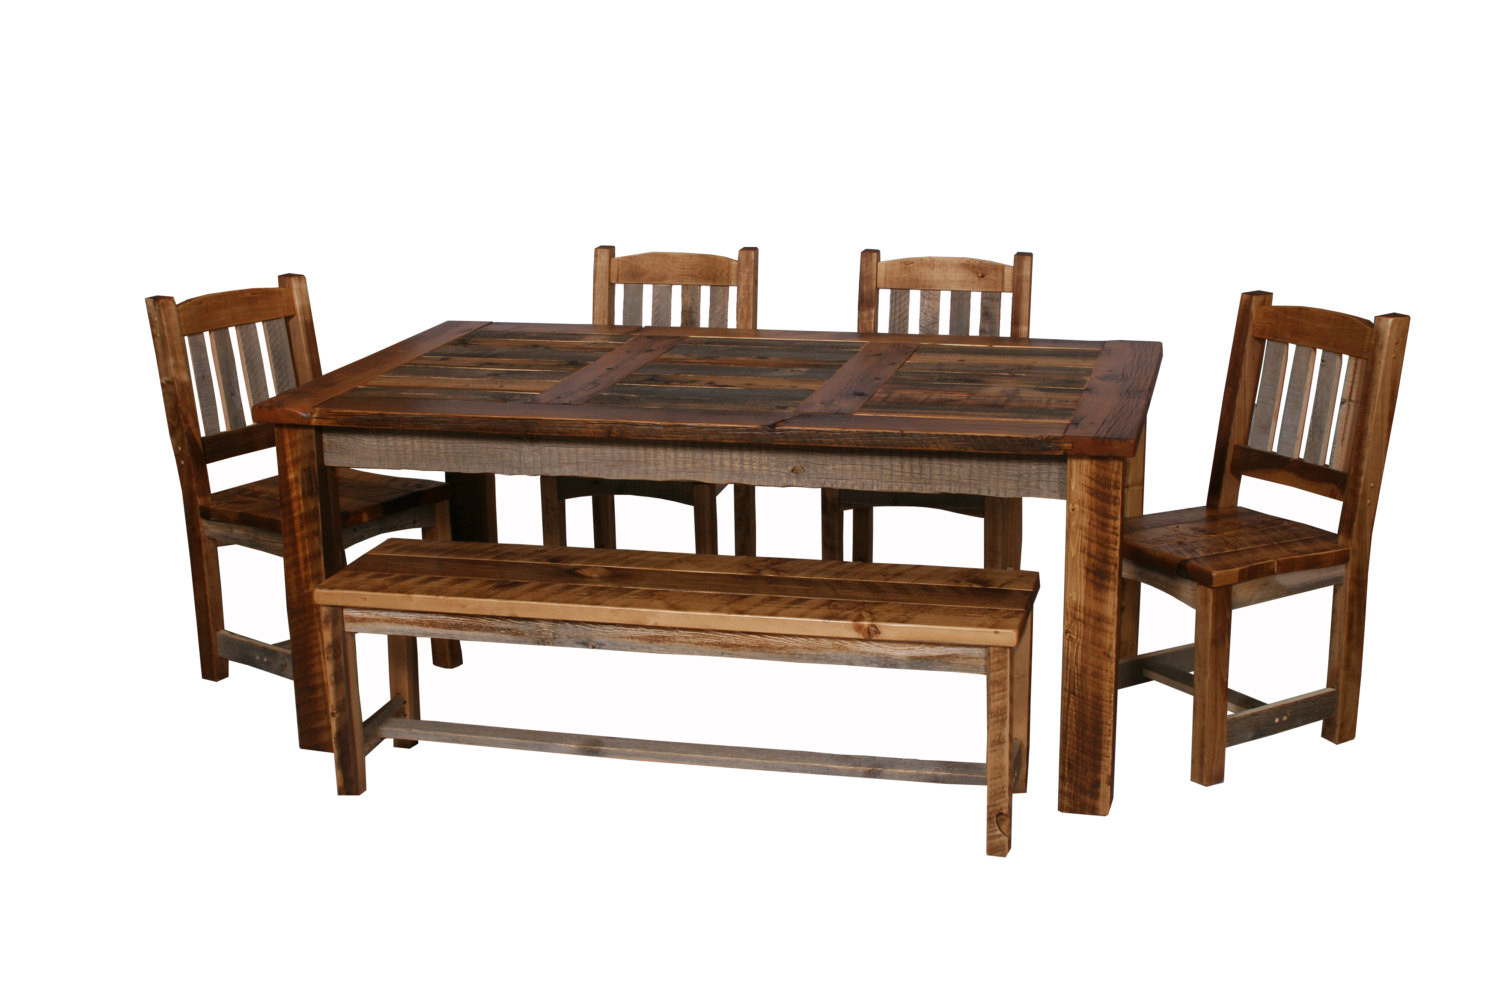 Best ideas about Wood Dining Room Table . Save or Pin Natural Barn Wood Dining Table Set Dining Room Furniture Now.